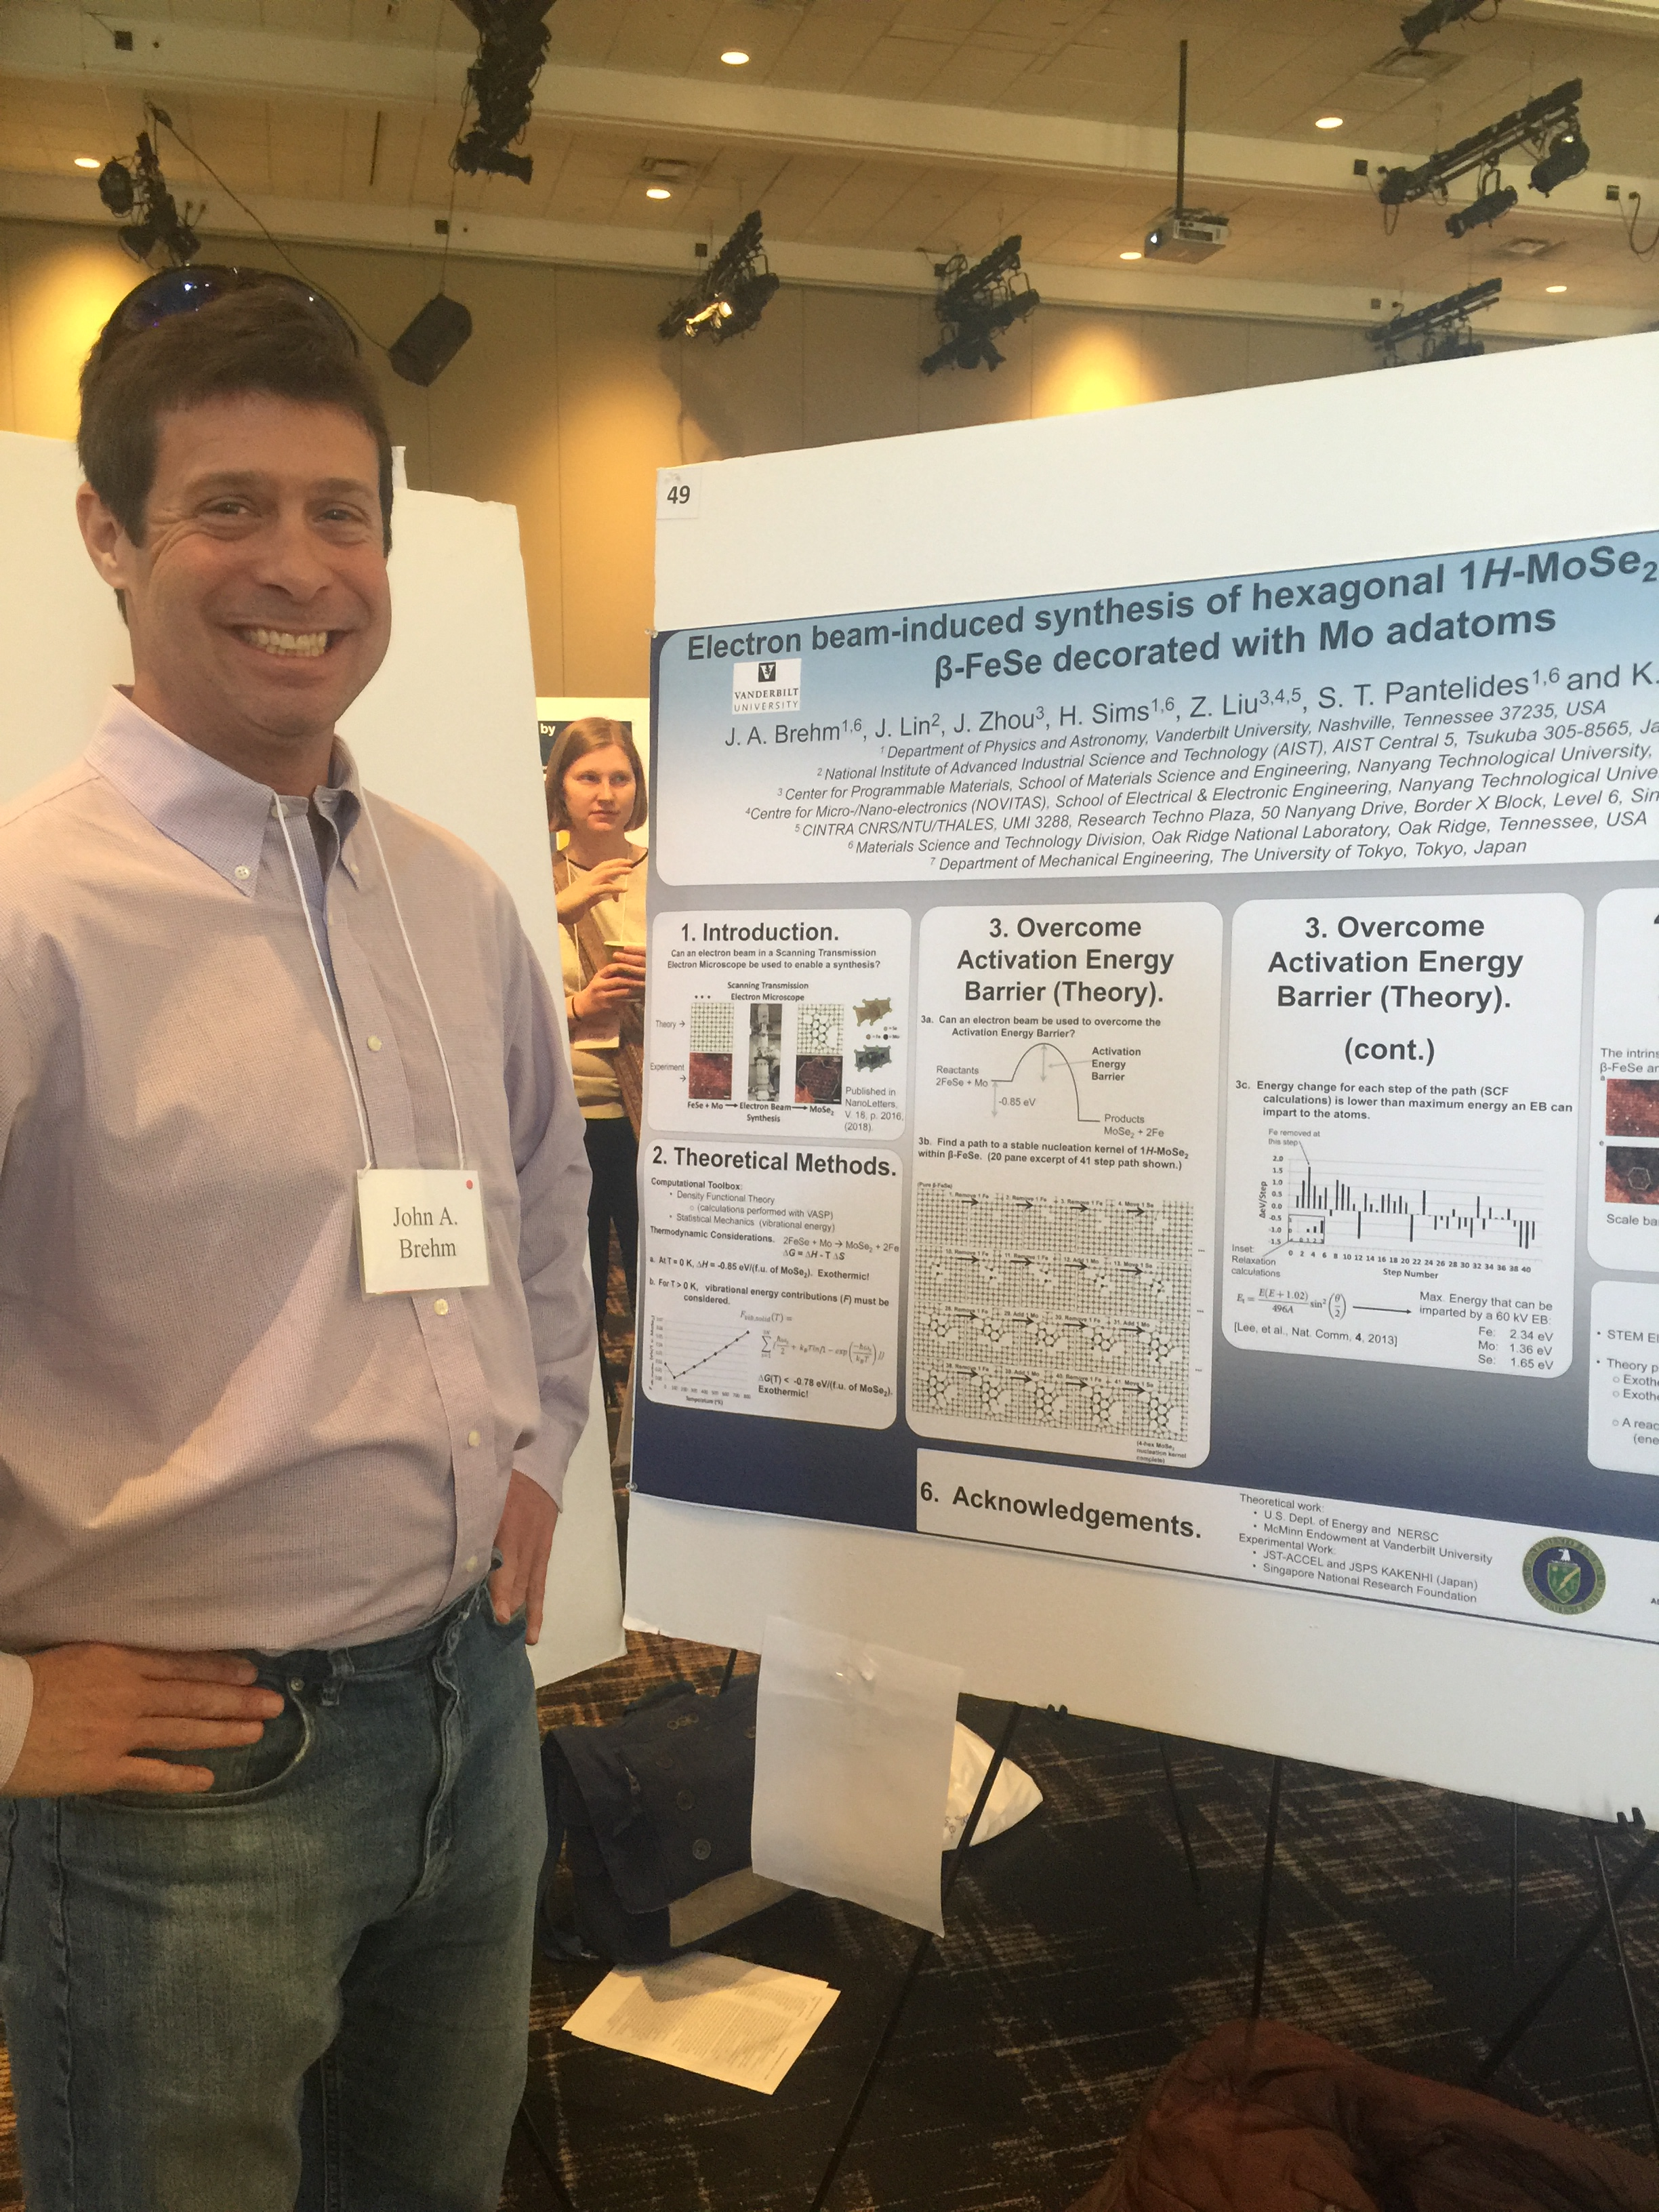 Vanderbilt Postdoctoral Association 2018 Symposium: Dr. John Brehm presents his poster.